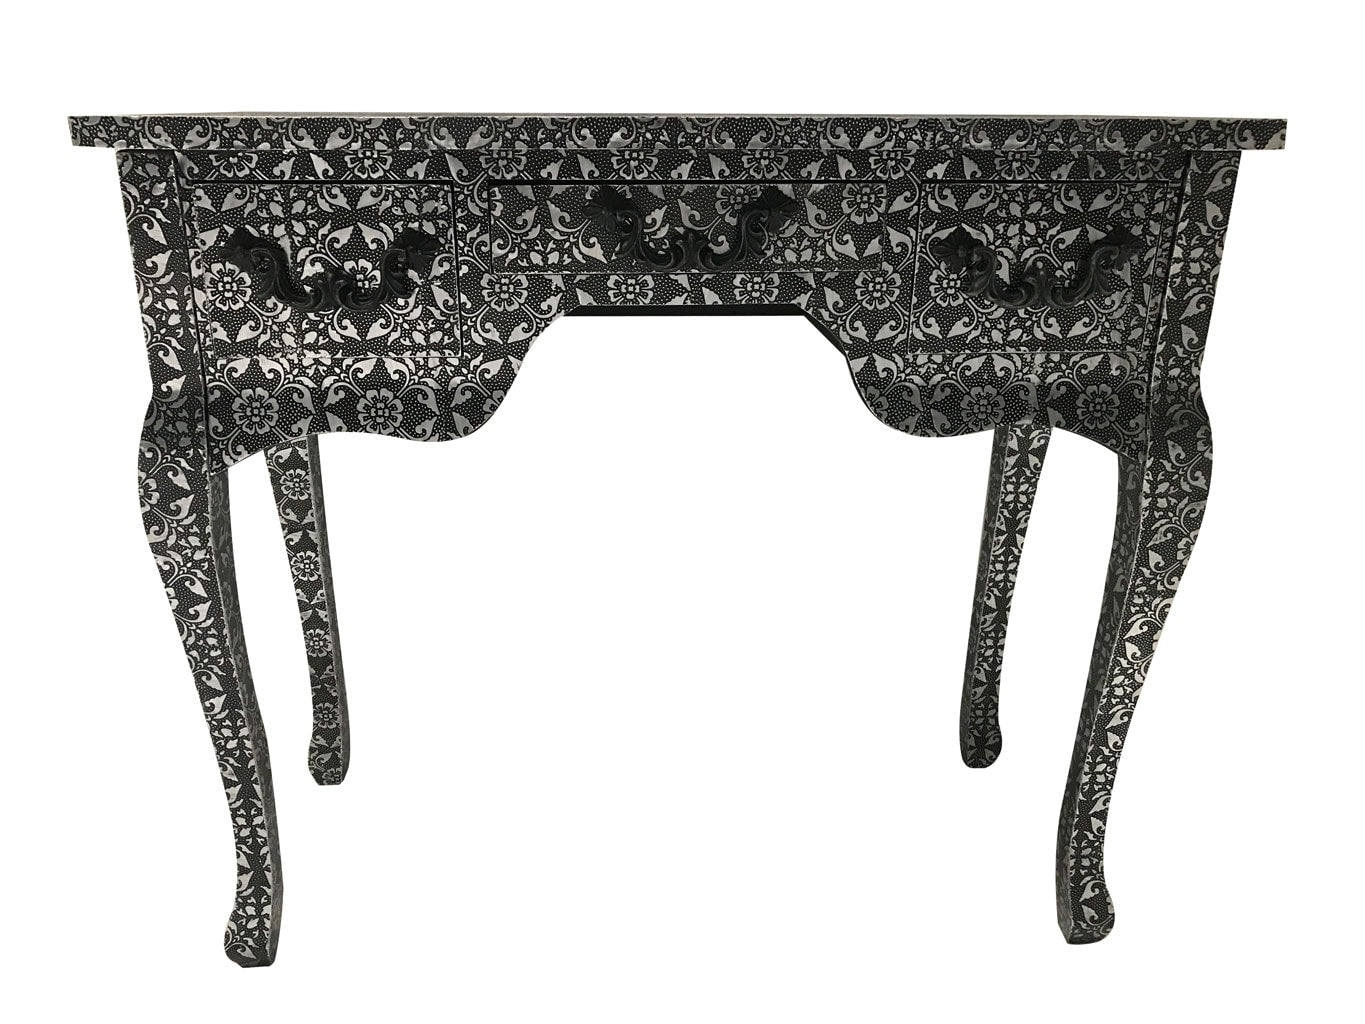 Repousse Side Table with 3 Drawers and Hammered Floral Design